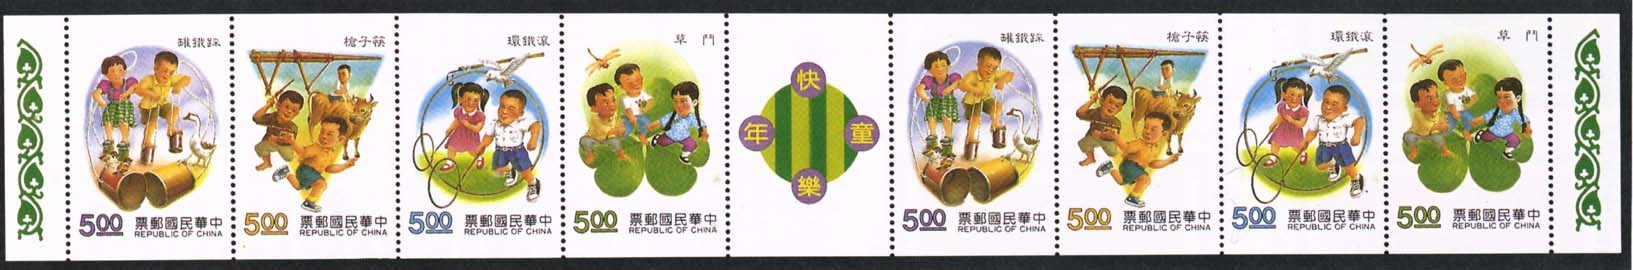 (S304.6)Special 304 Childres's Plays Postage Stamps (Issue of 1992)